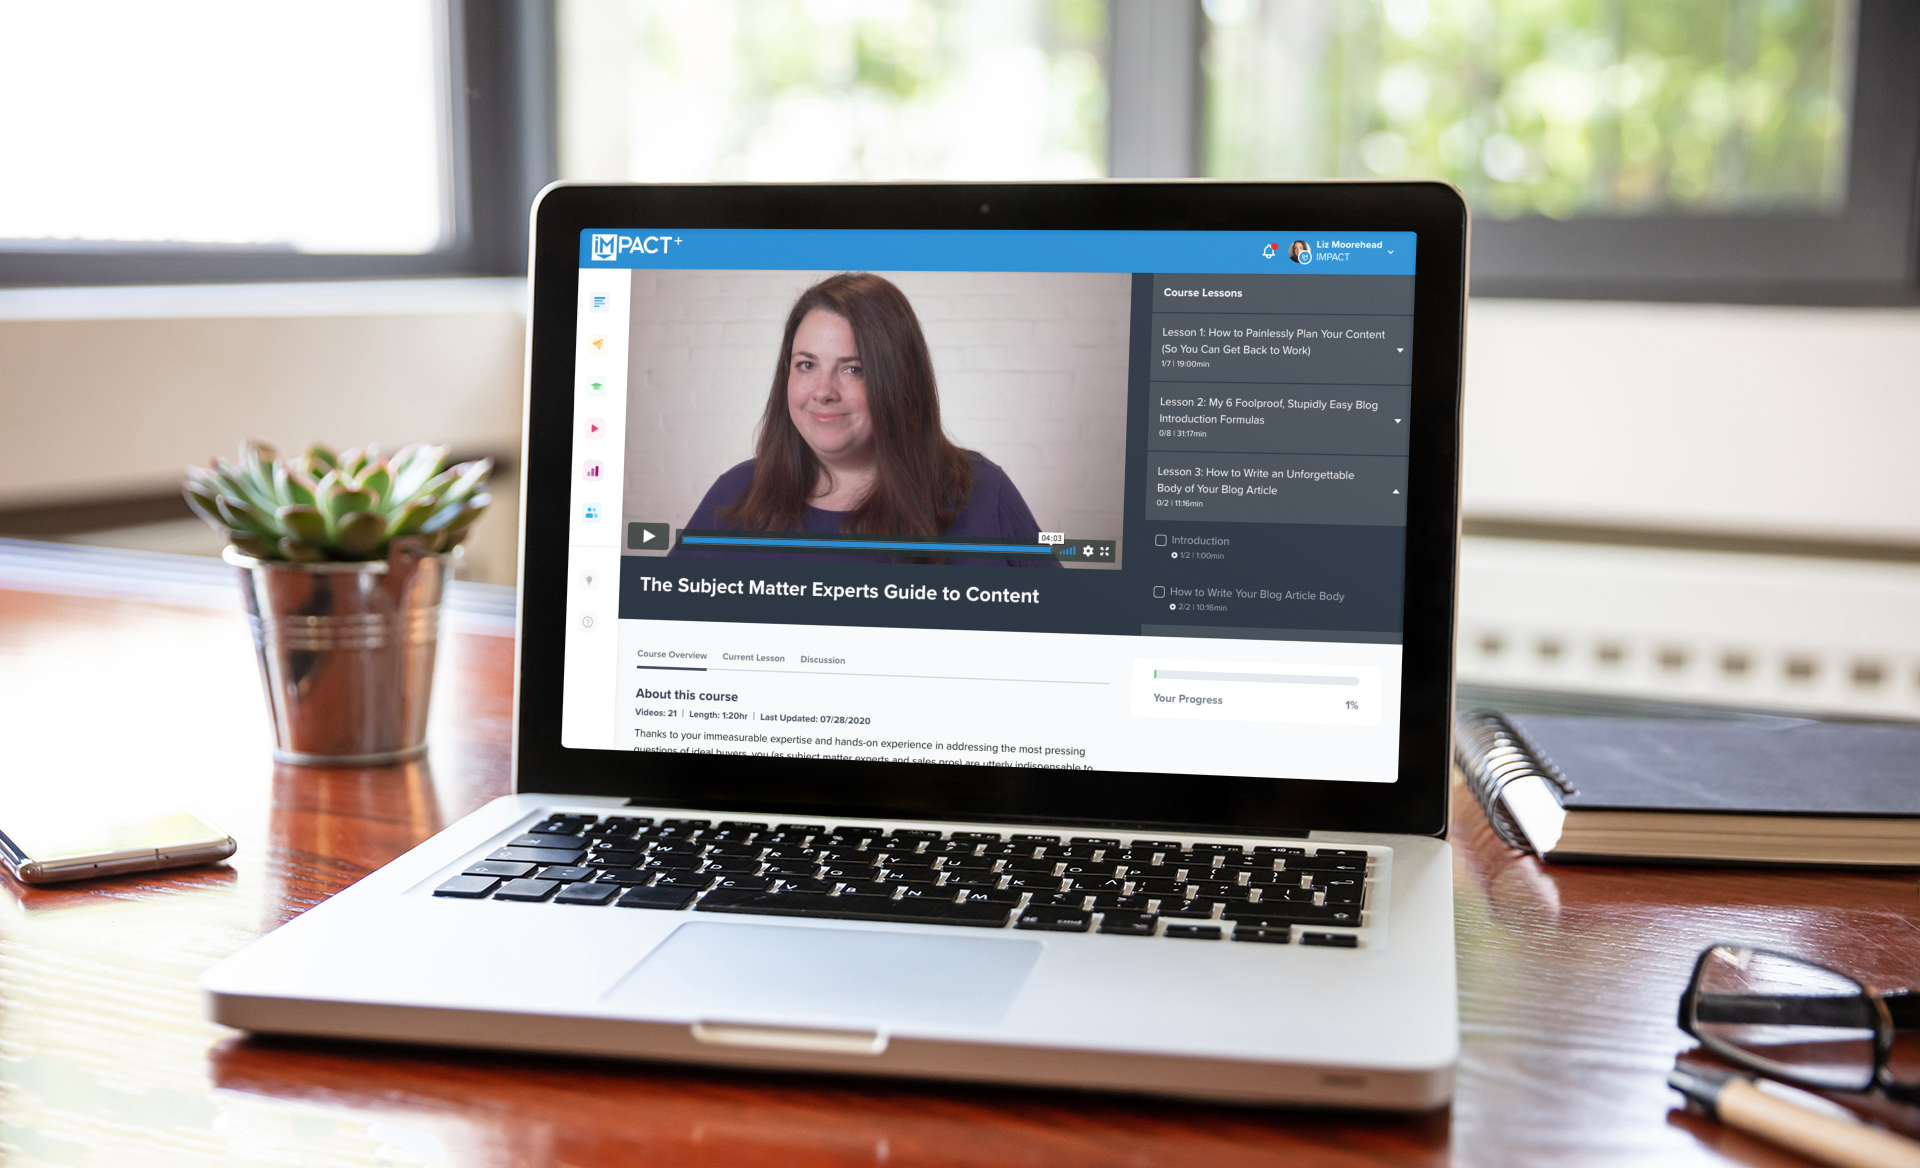 The subject matter expert's guide to creating content (new IMPACT+ course)